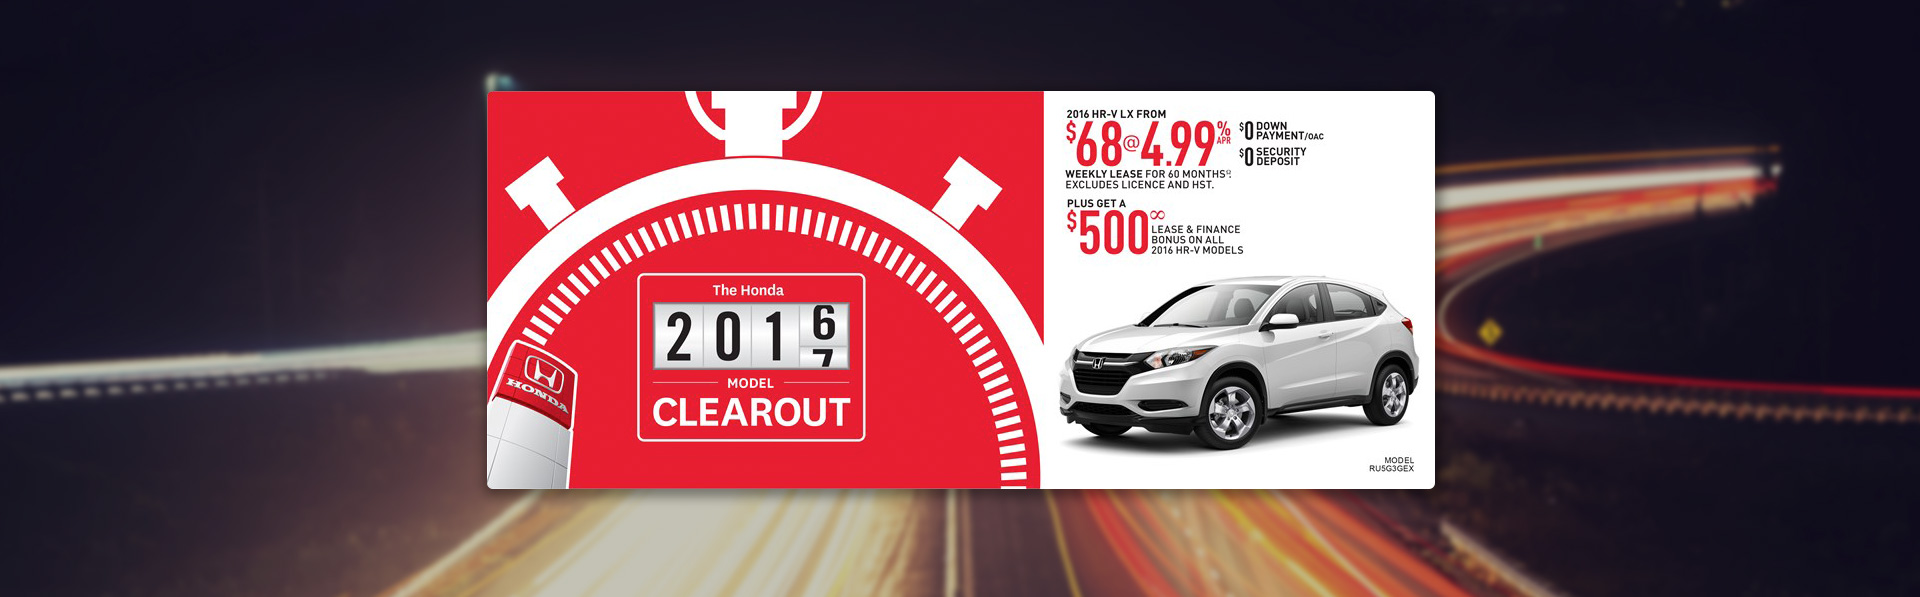 Honda HR-V - September Incentive